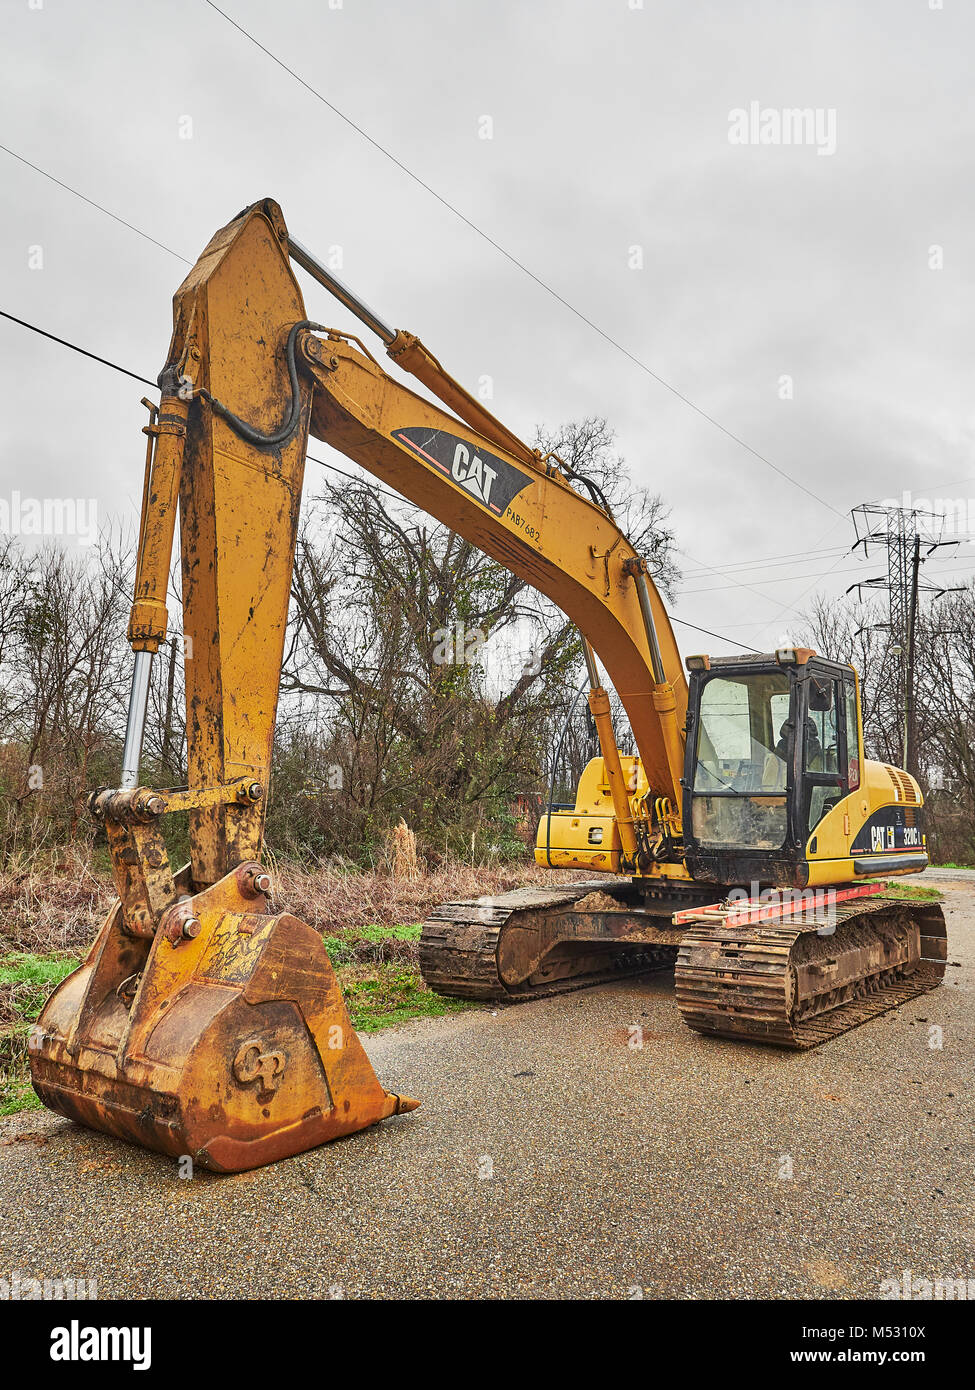 Cat Excavator High Resolution Stock Photography And Images Alamy